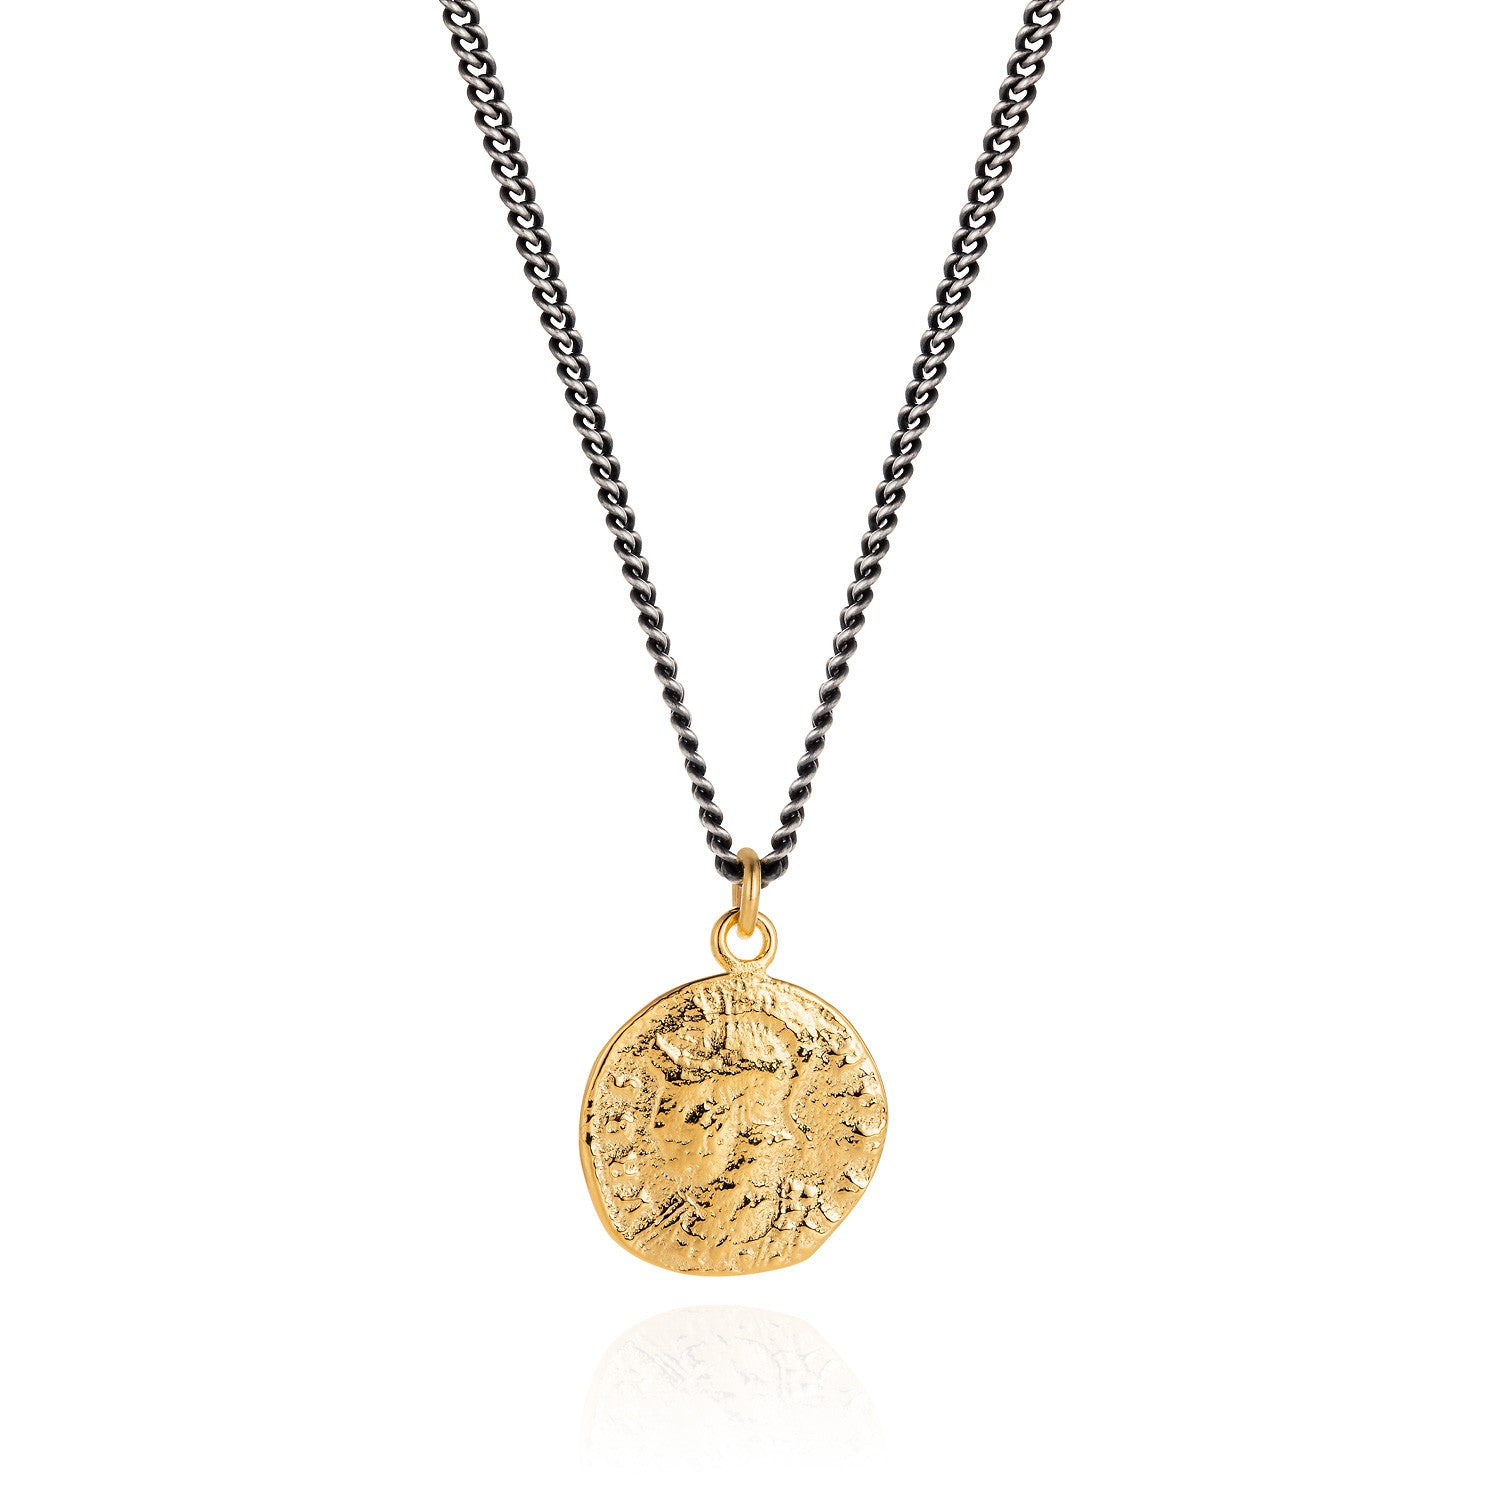 coin s of gold set pendant a chain backside yellow centering bronze p bezel the necklace ancient betteridge polished in bulgari link roman